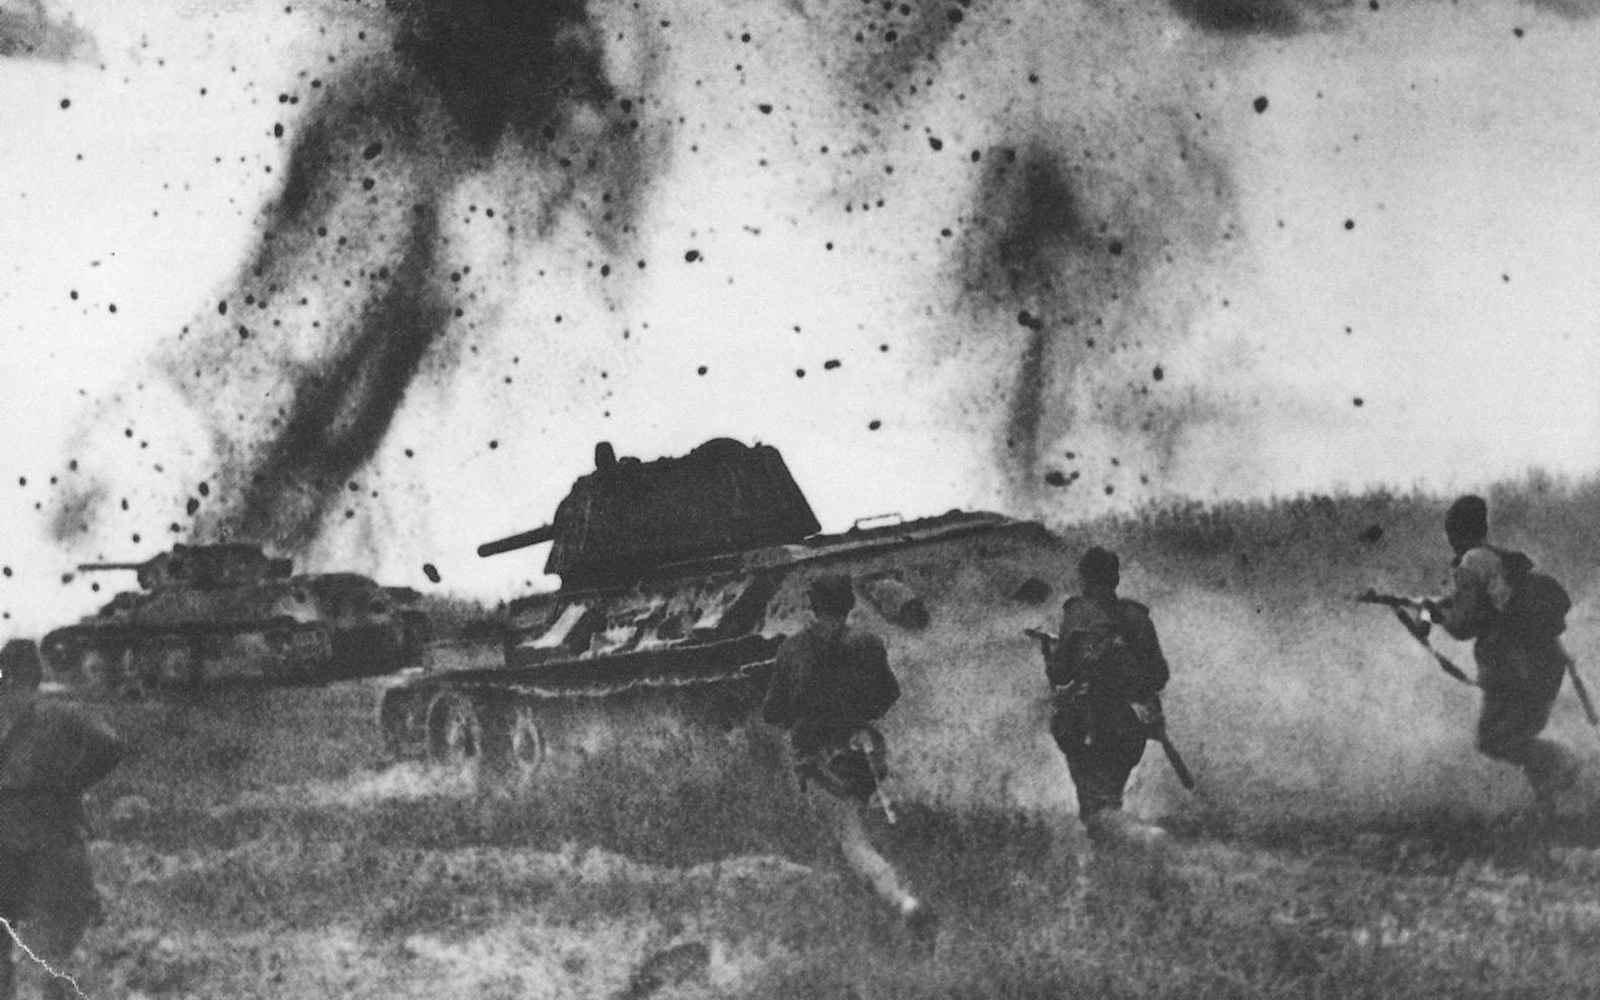 T-34 advance protecting infantry under enemy fire